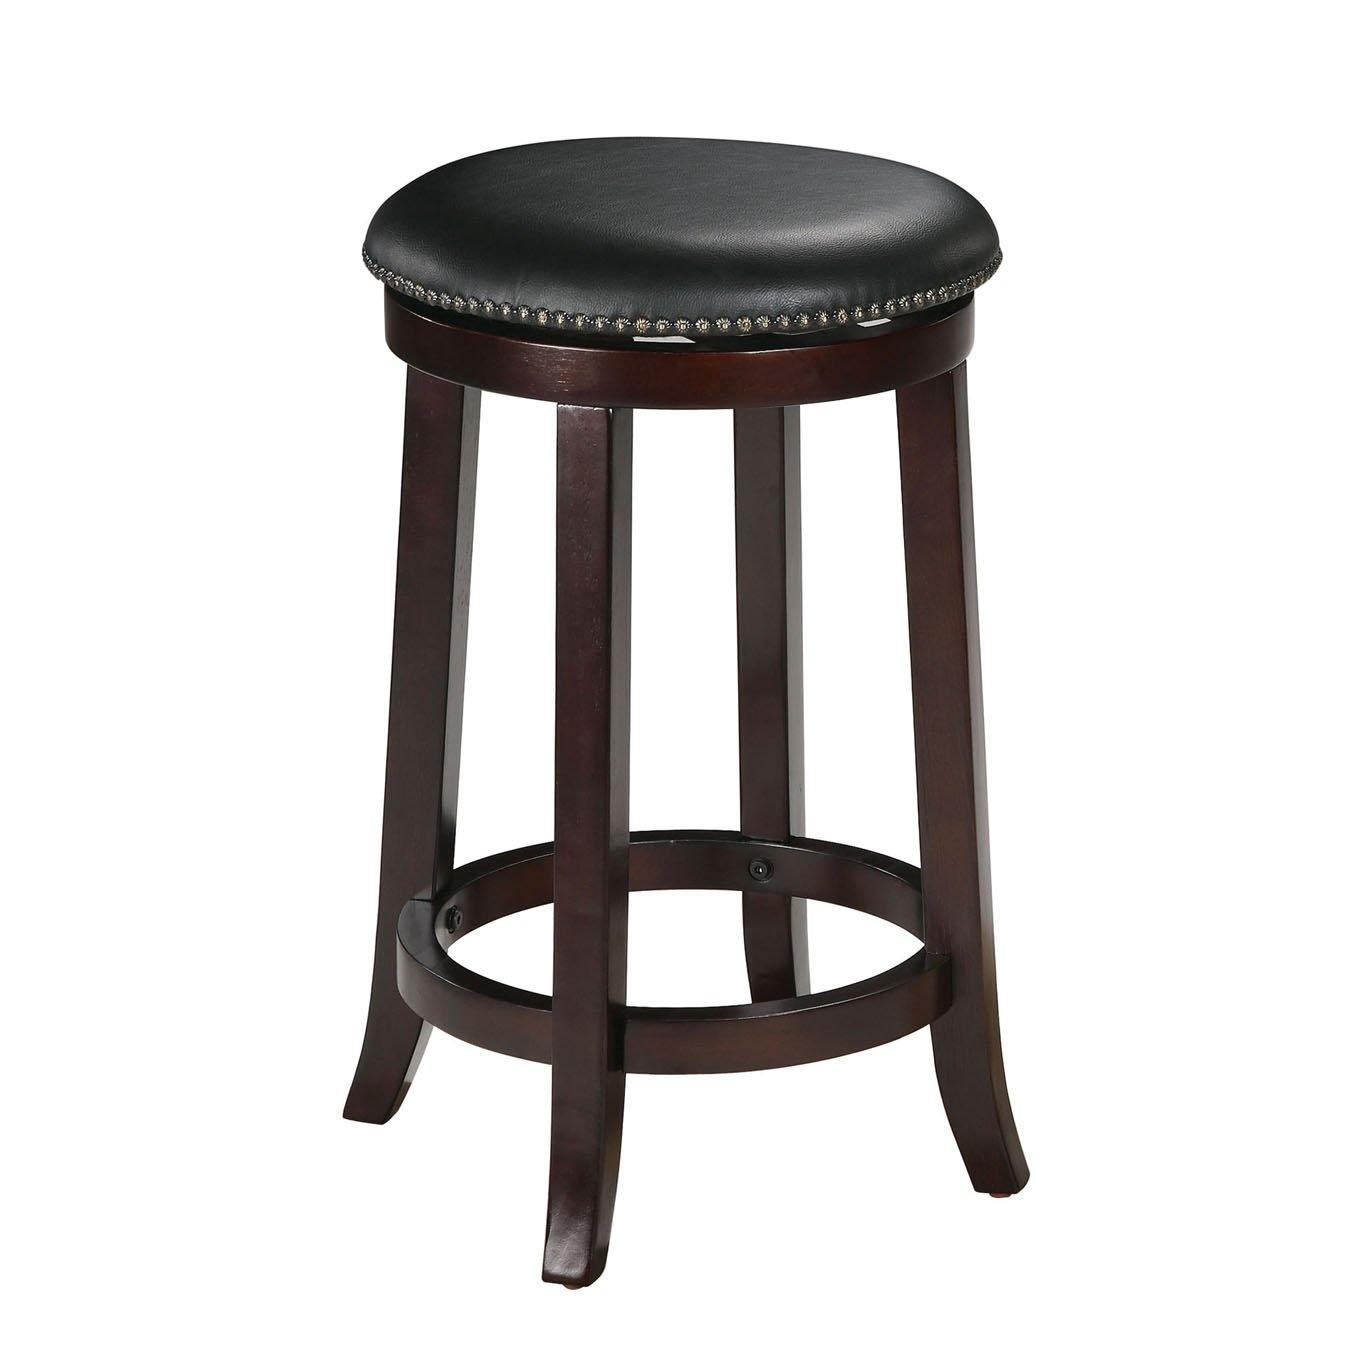 Counter Height Swivel Stool With Nailhead Trim, Solid Wood in Espresso (Set of 2)